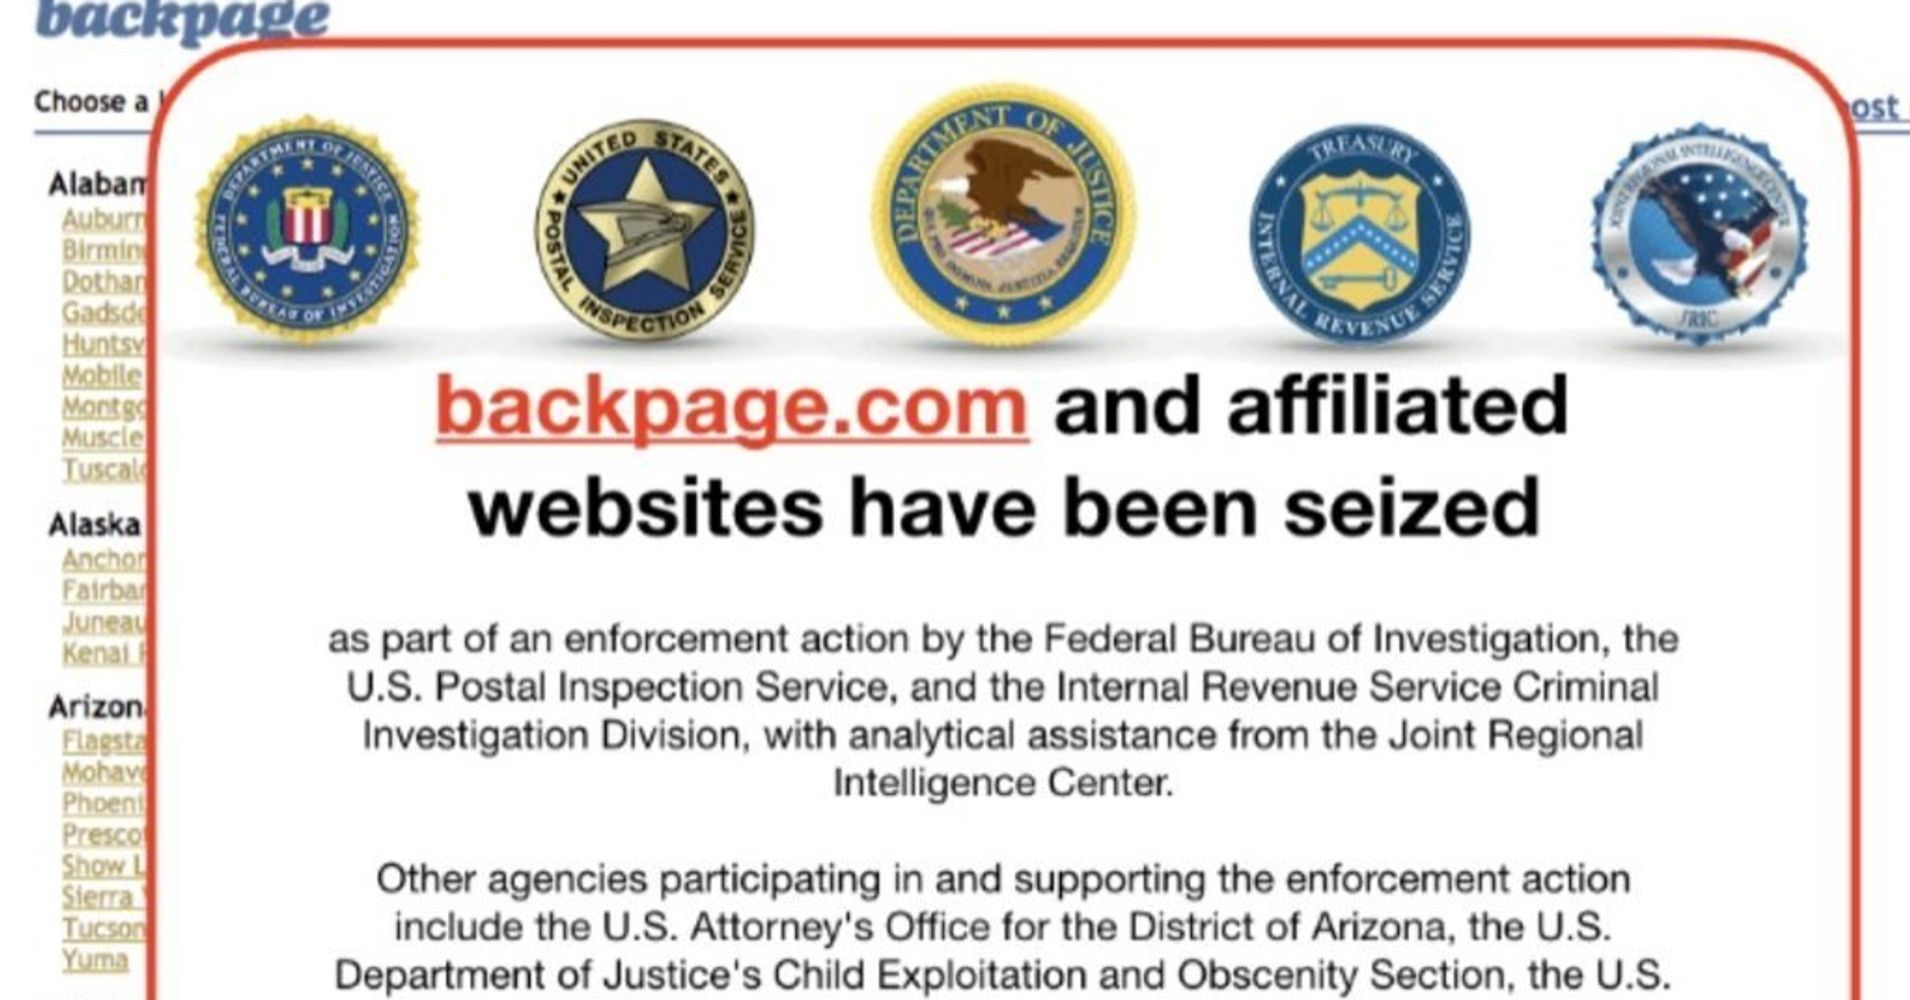 Feds Seize Backpage.com And Indict Founder In Prostitution Crackdown |  HuffPost